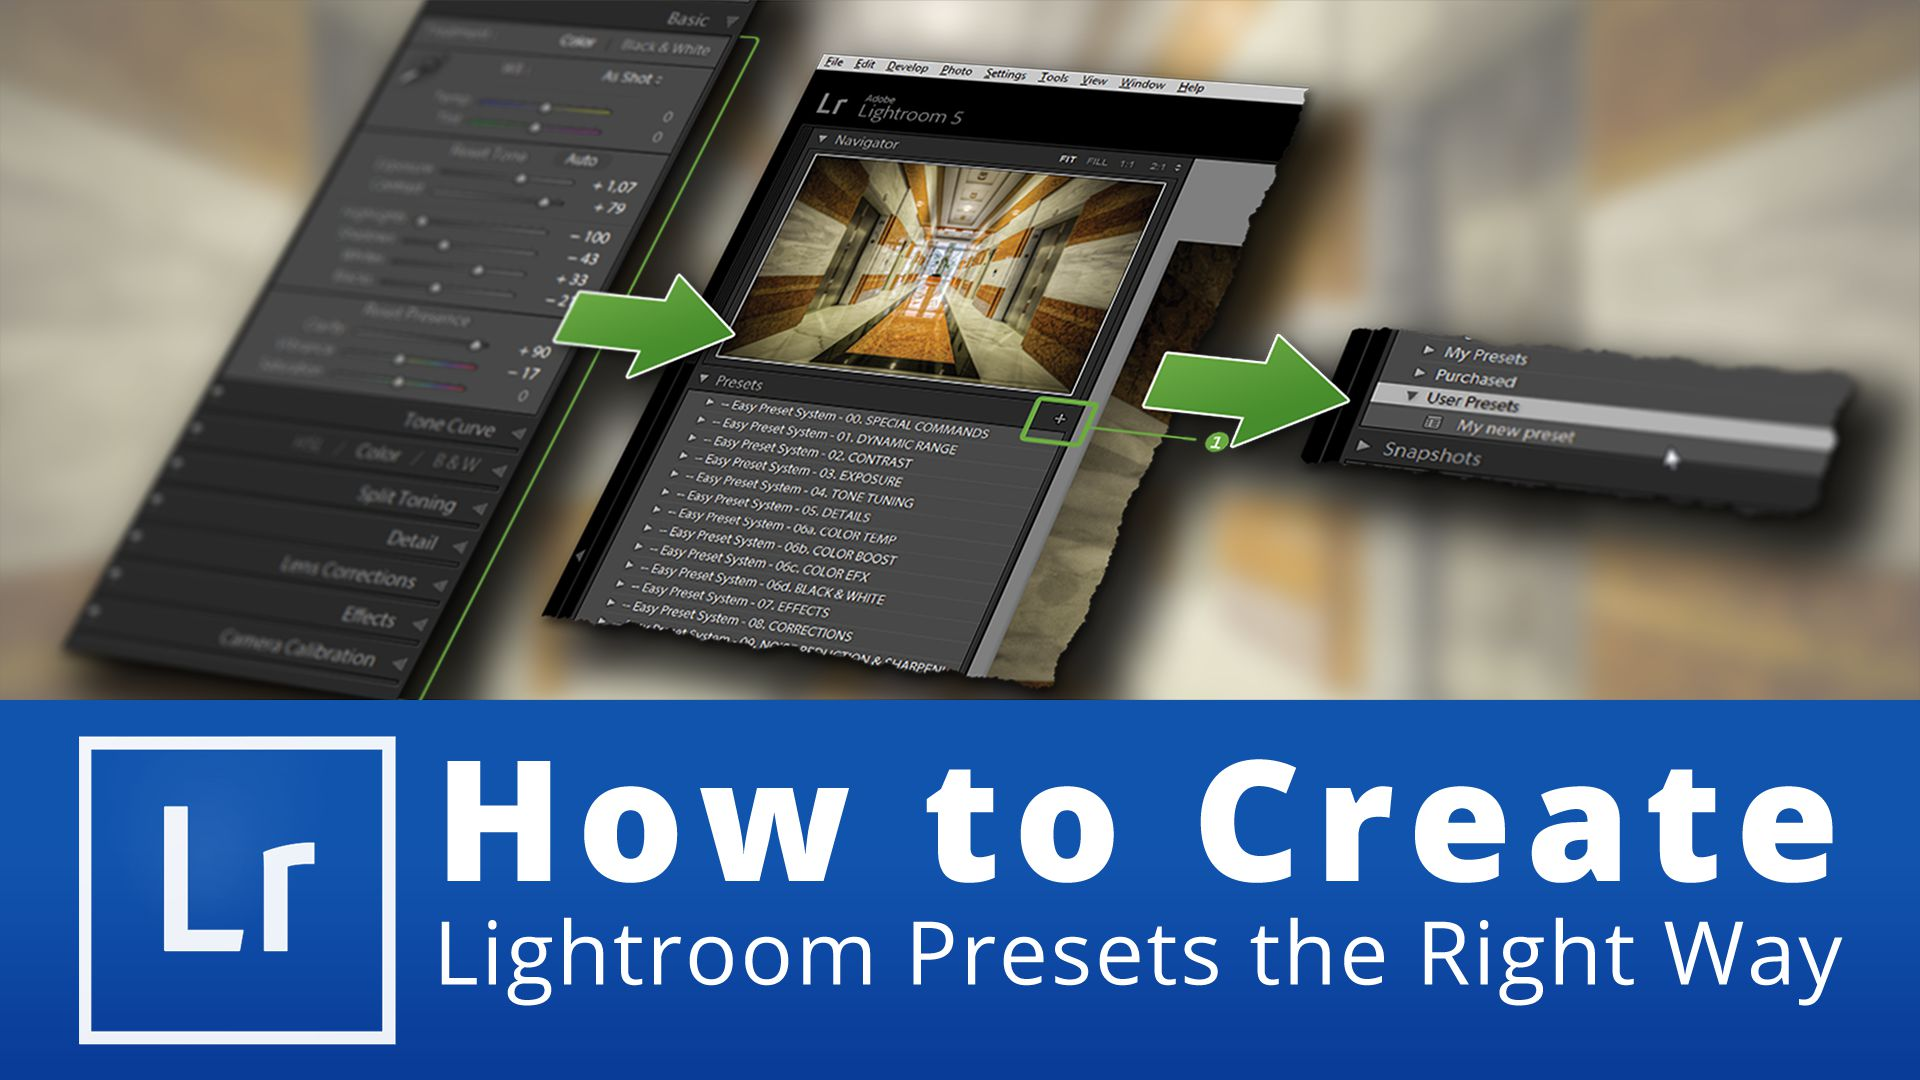 How to Create Lightroom Presets the Right Way